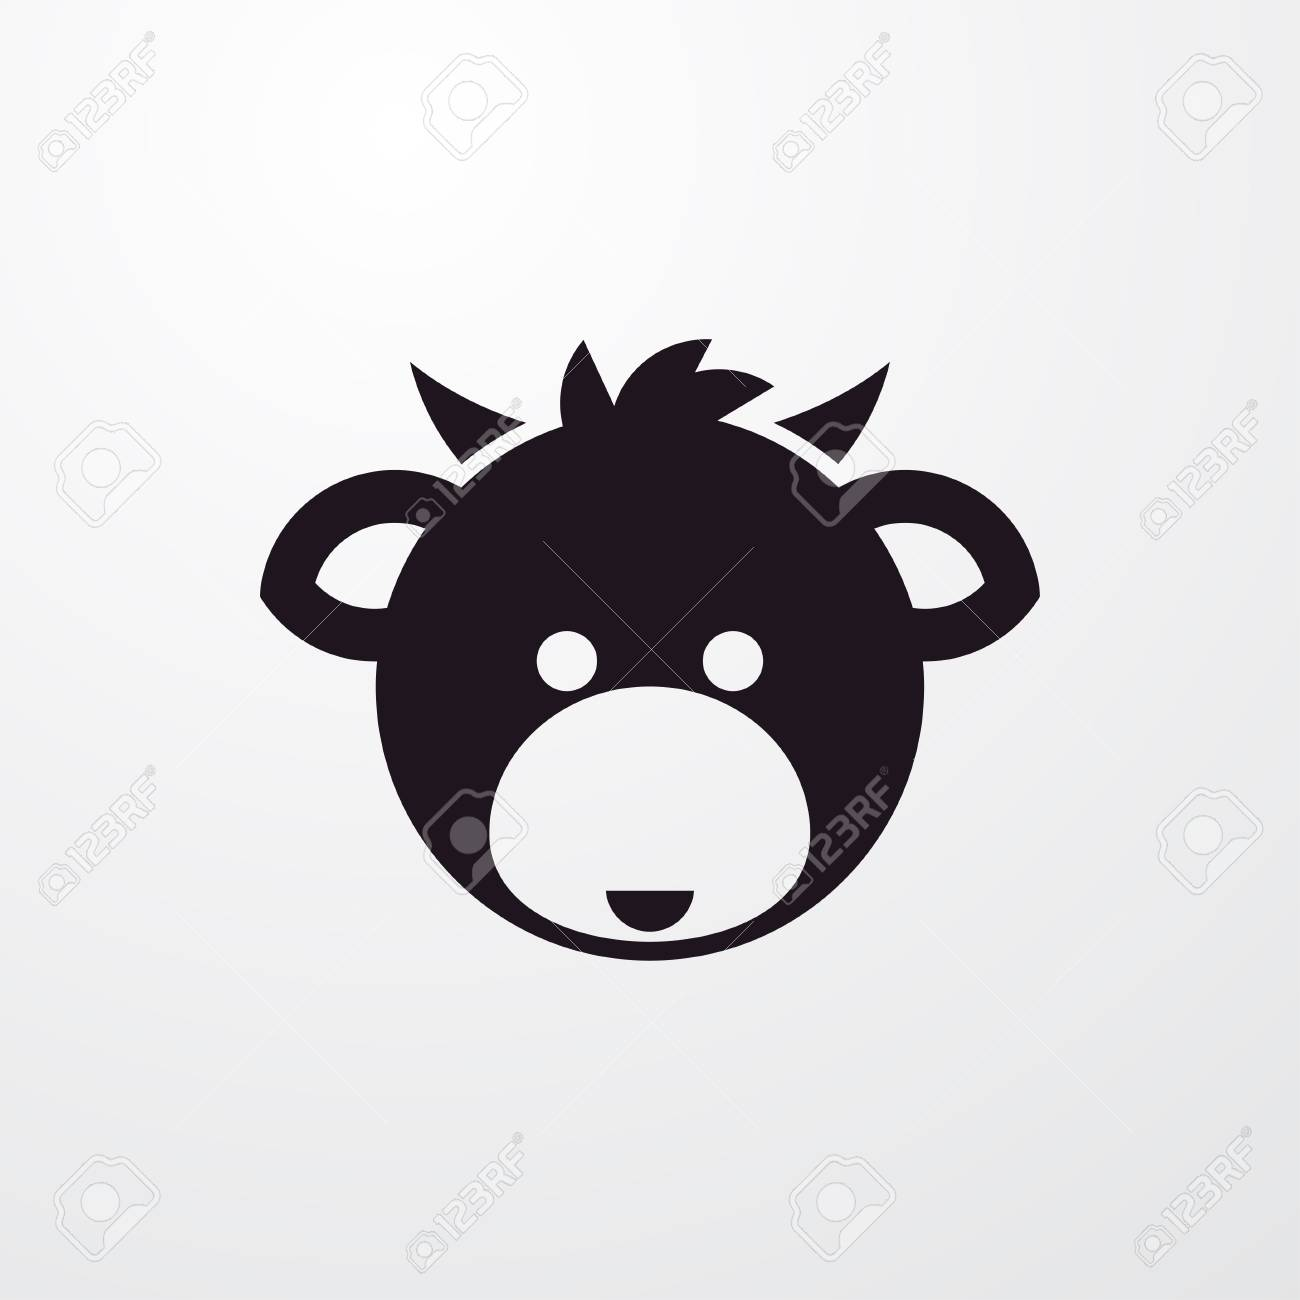 Cow Head Icon Illustration Isolated Vector Sign Symbol Royalty Free